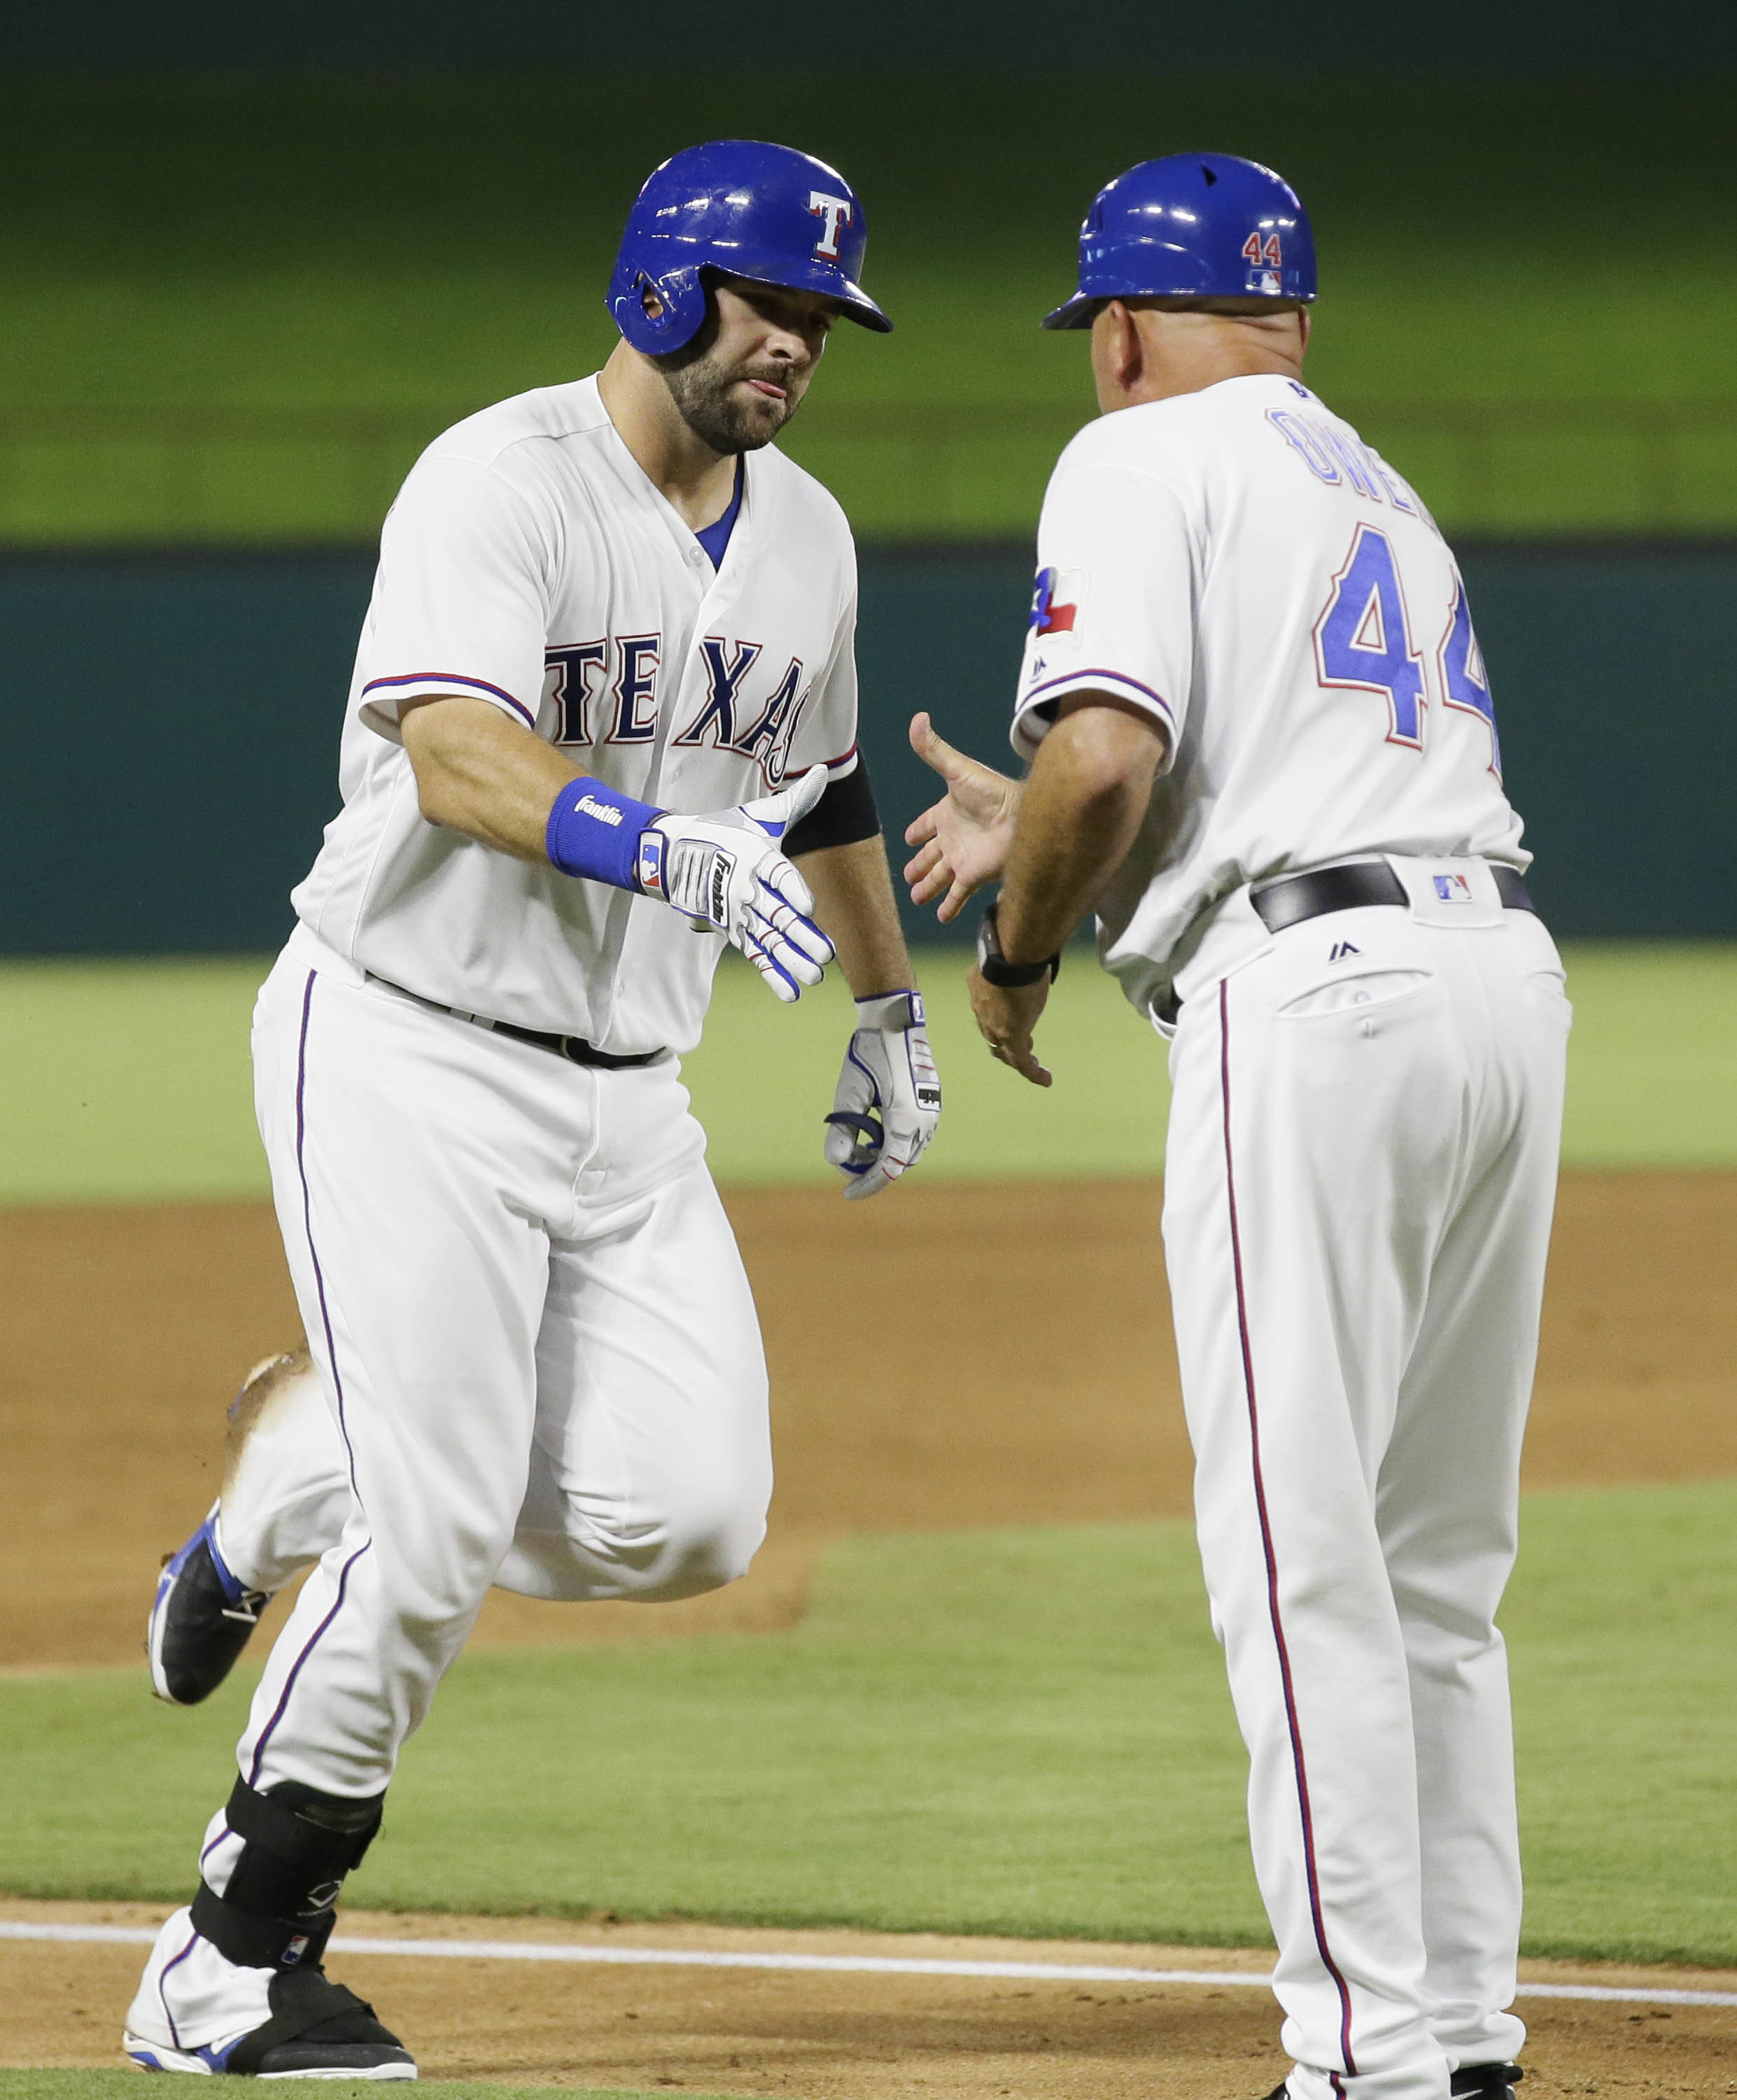 Texas Rangers' Mitch Moreland, left, is congratulated by third base coach Spike Owen (44) as Moreland runs the bases after hitting a two run home run during the fifth inning of a baseball game against the Oakland Athletics in Arlington, Texas, Tuesday, Ju